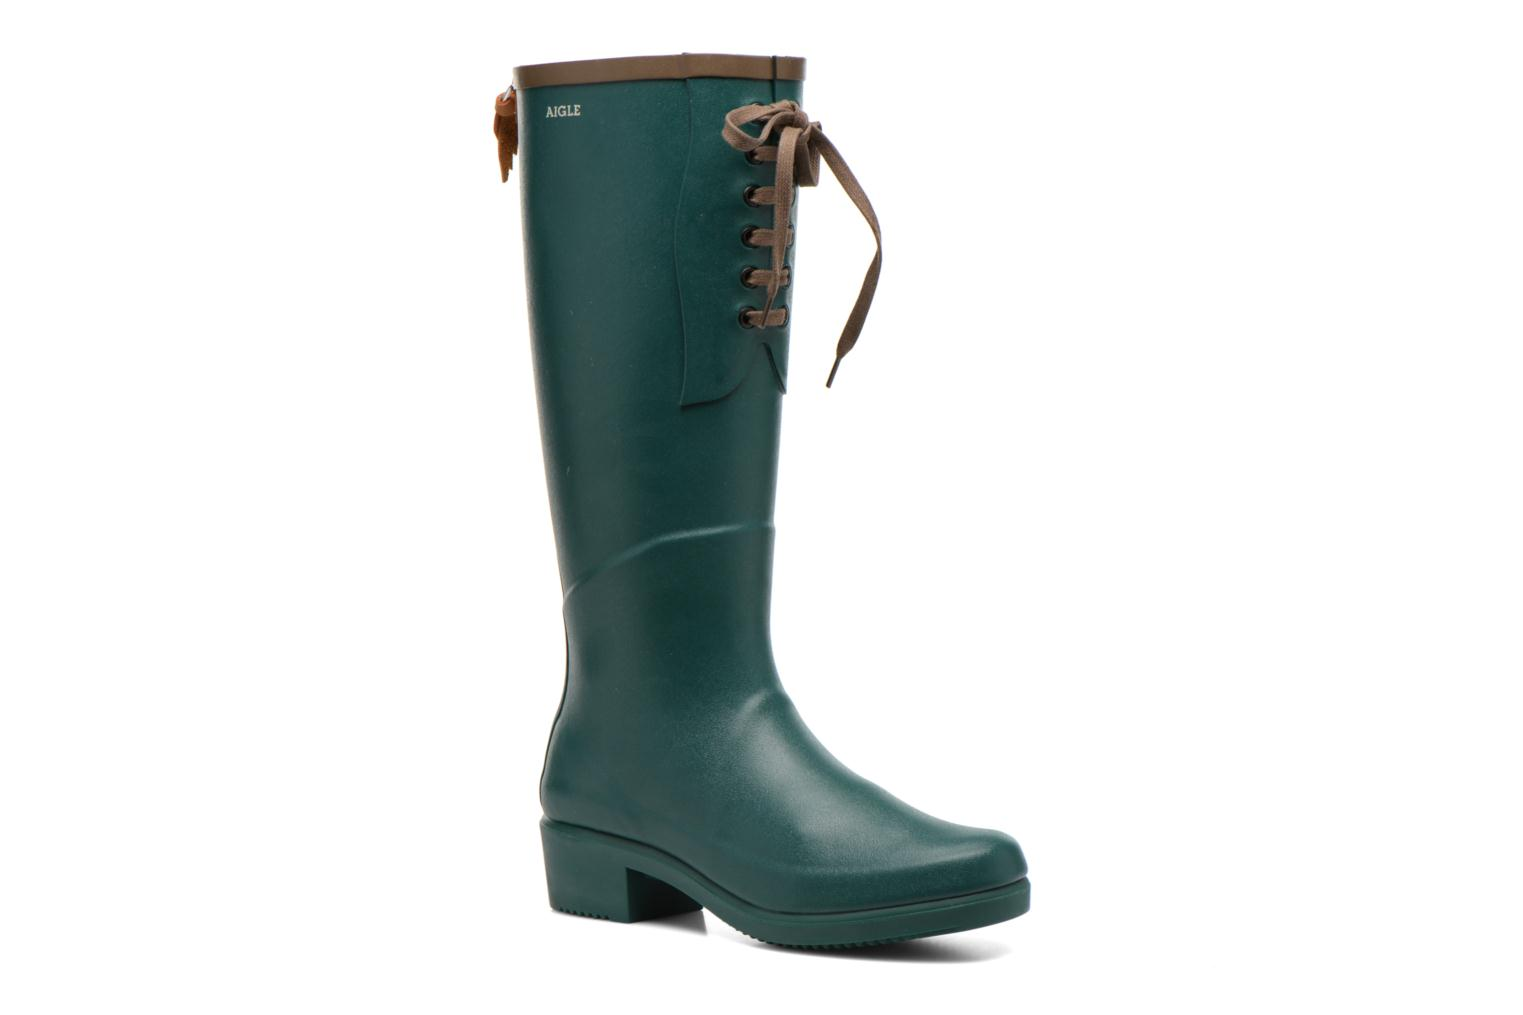 Aigle Miss Juliette L Groen Korting Eastbay Korting 2018 5htQ7Mm4x